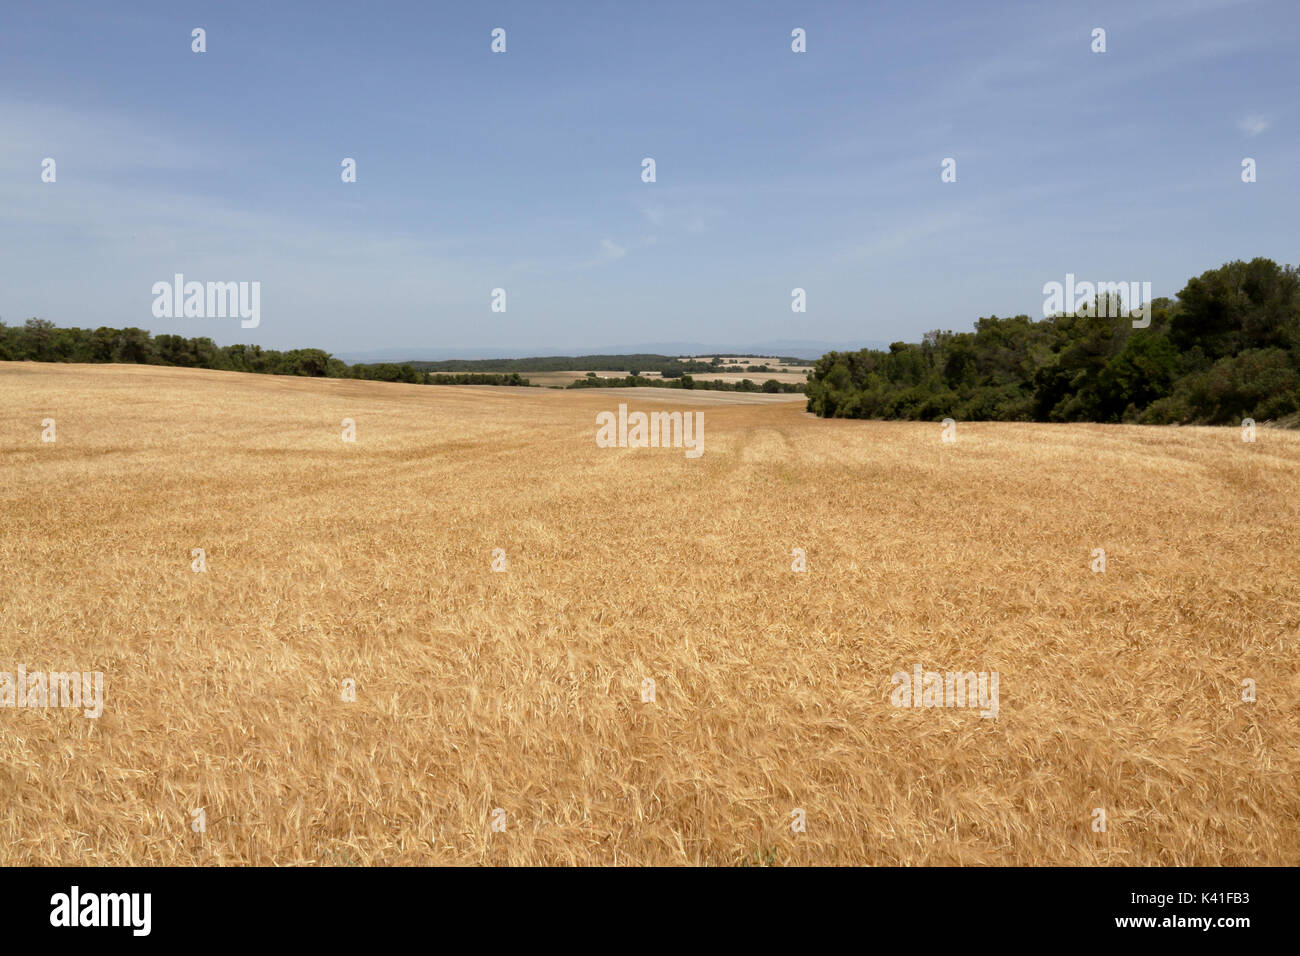 A landscape with a yellow corn field in the Spanish region of Aragon Stock Photo